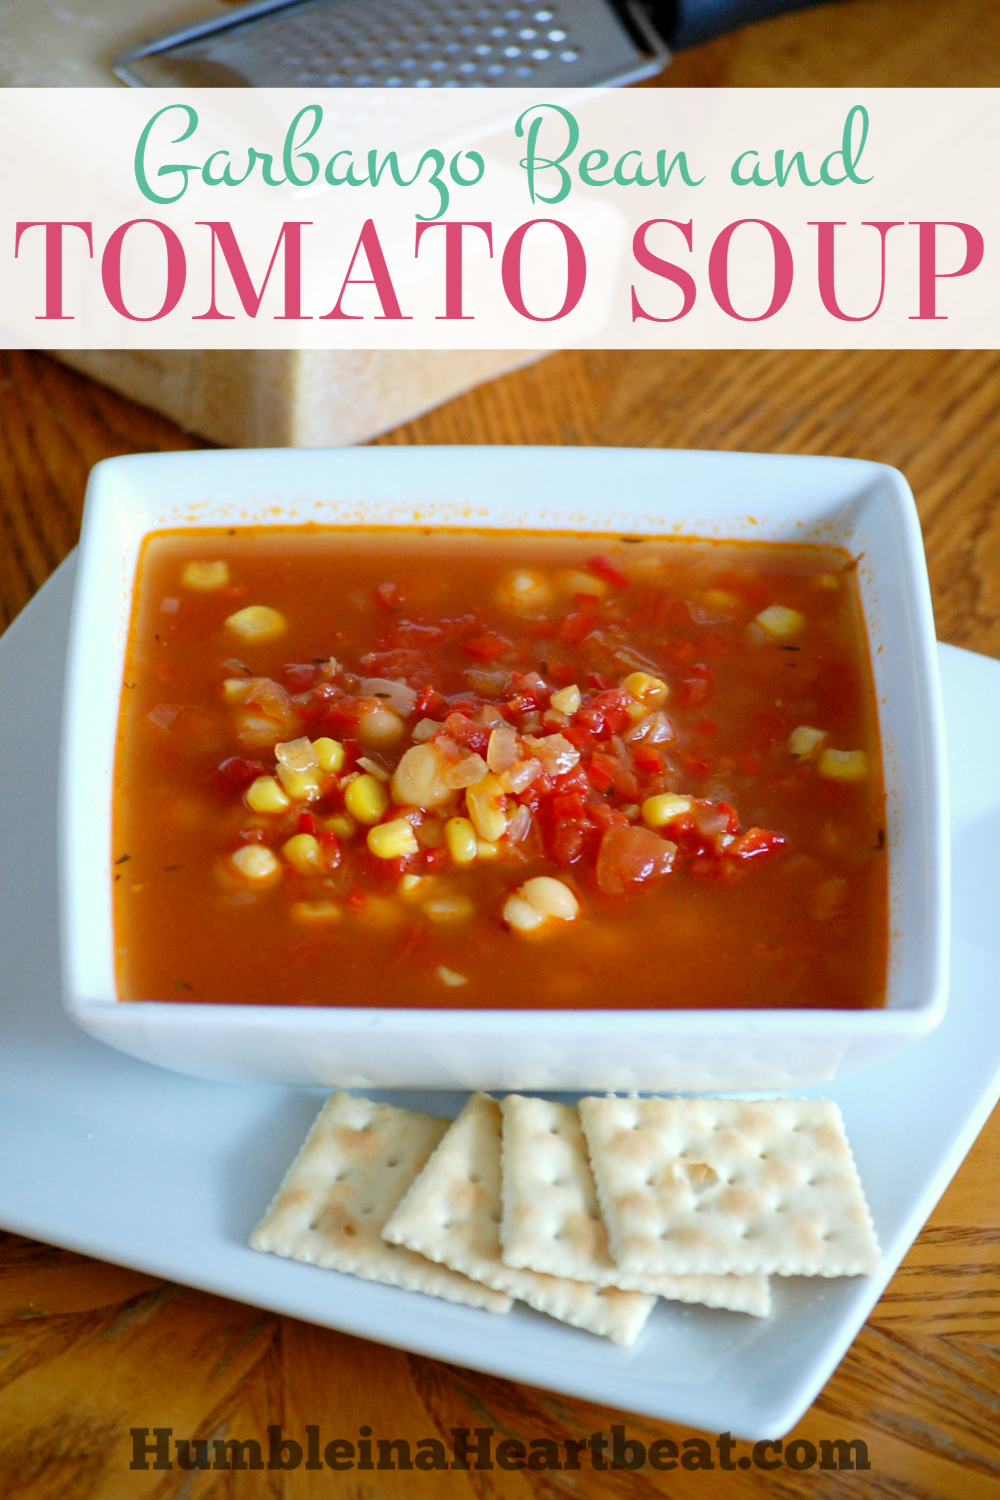 Garbanzo Bean and Tomato Soup - This soup is full of protein and delicious veggies, including red pepper, onions, and tomatoes. It's sure to be a hit with your entire family. SO delicious!